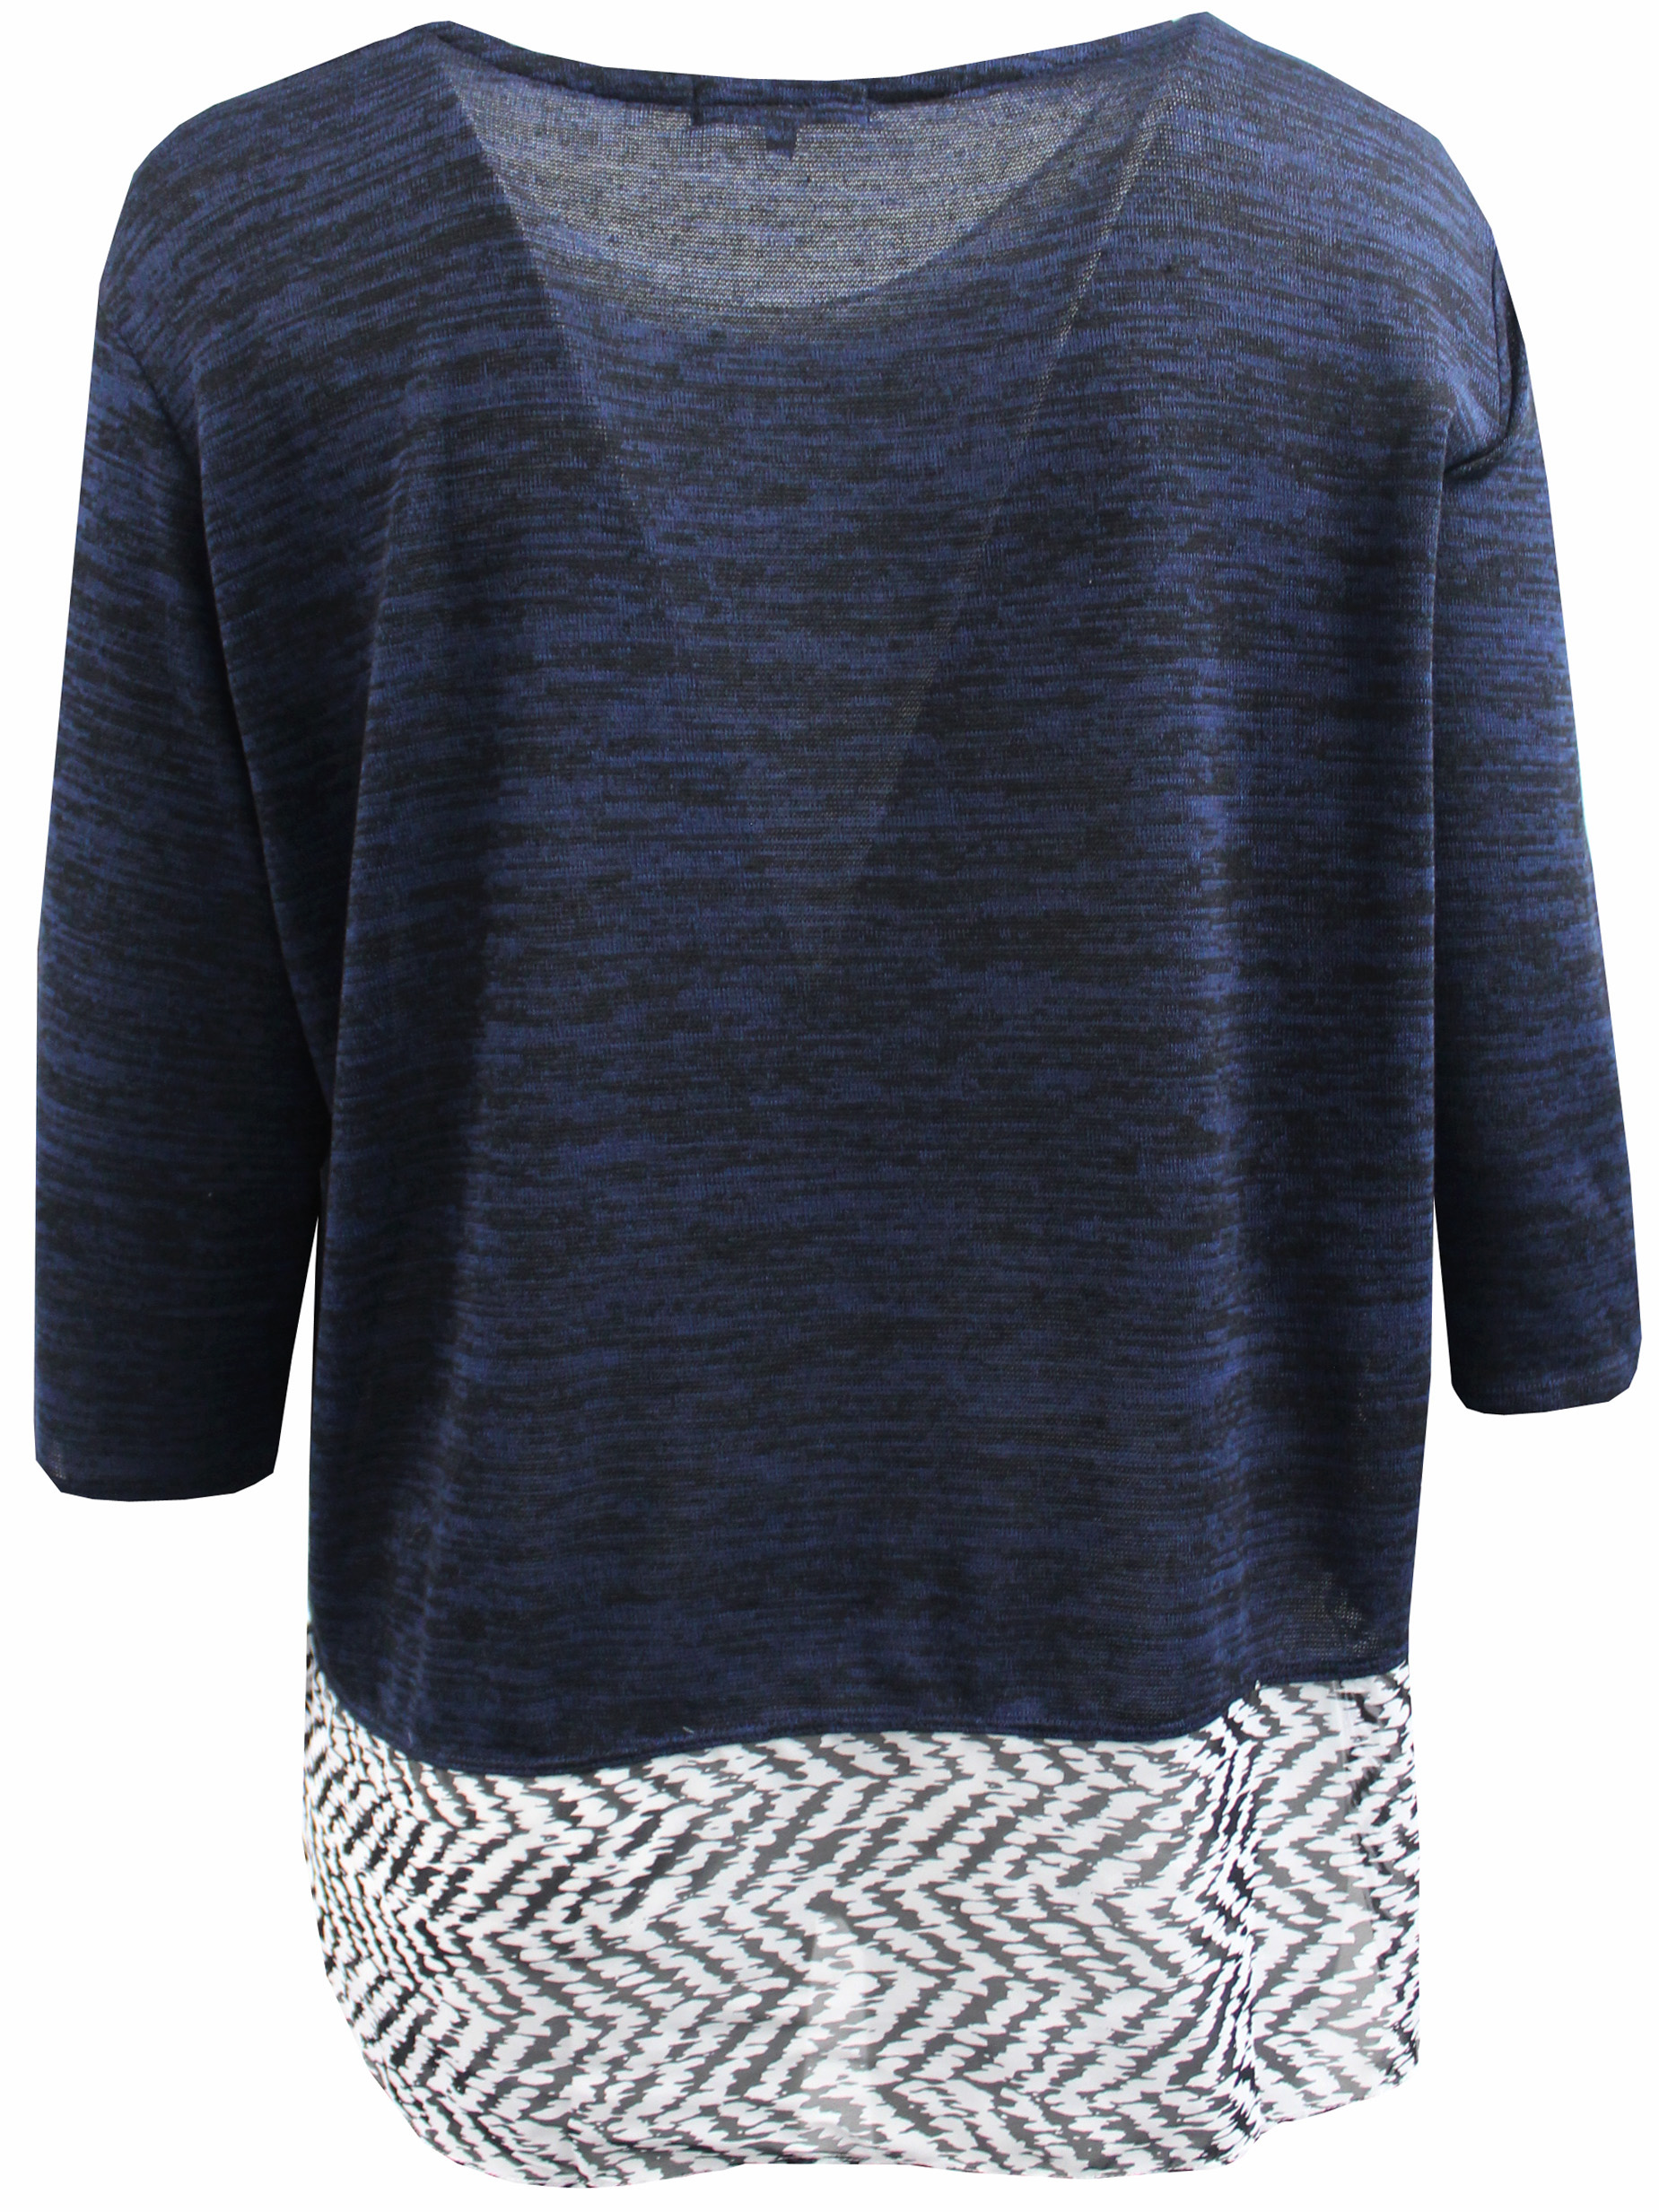 Dreamer P - Plus Size Women Two Tone Color Light Weight Knit Sweater